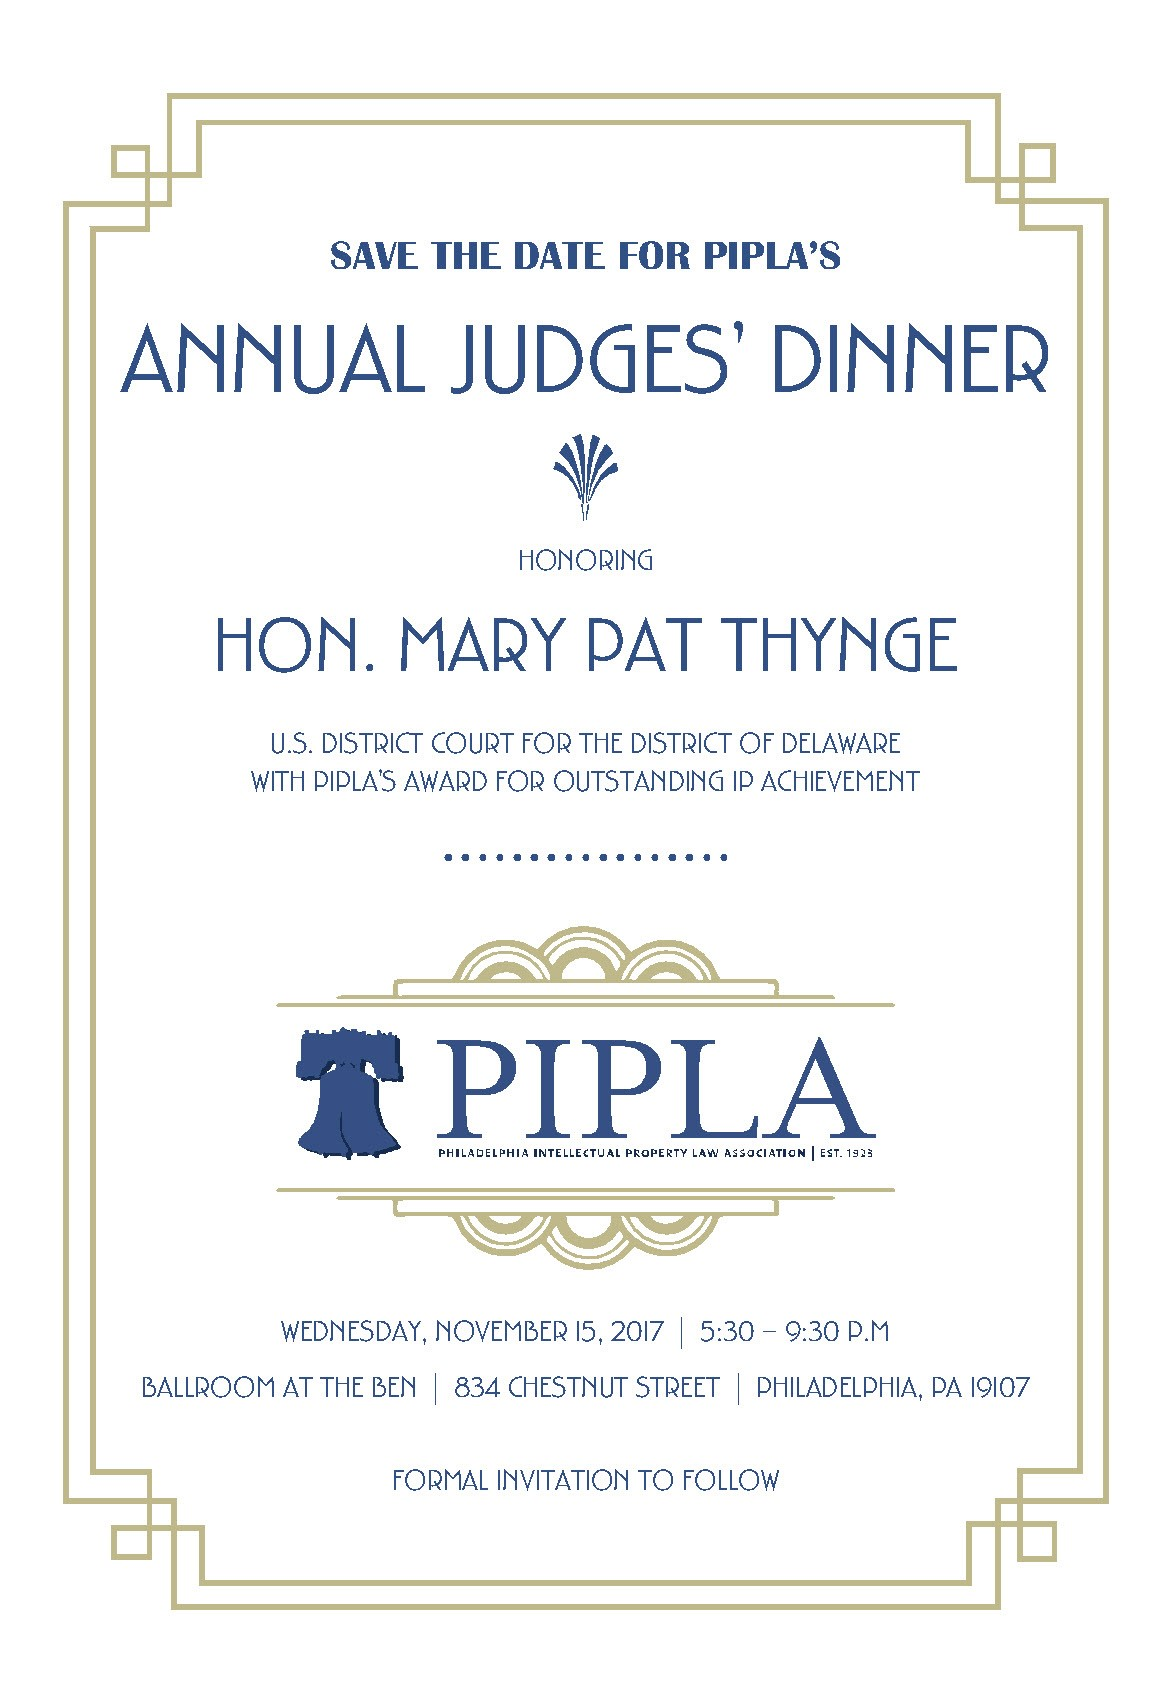 Save the date pipla annual judges dinner november 15 2017 pipla2017judgesdinner stopboris Image collections